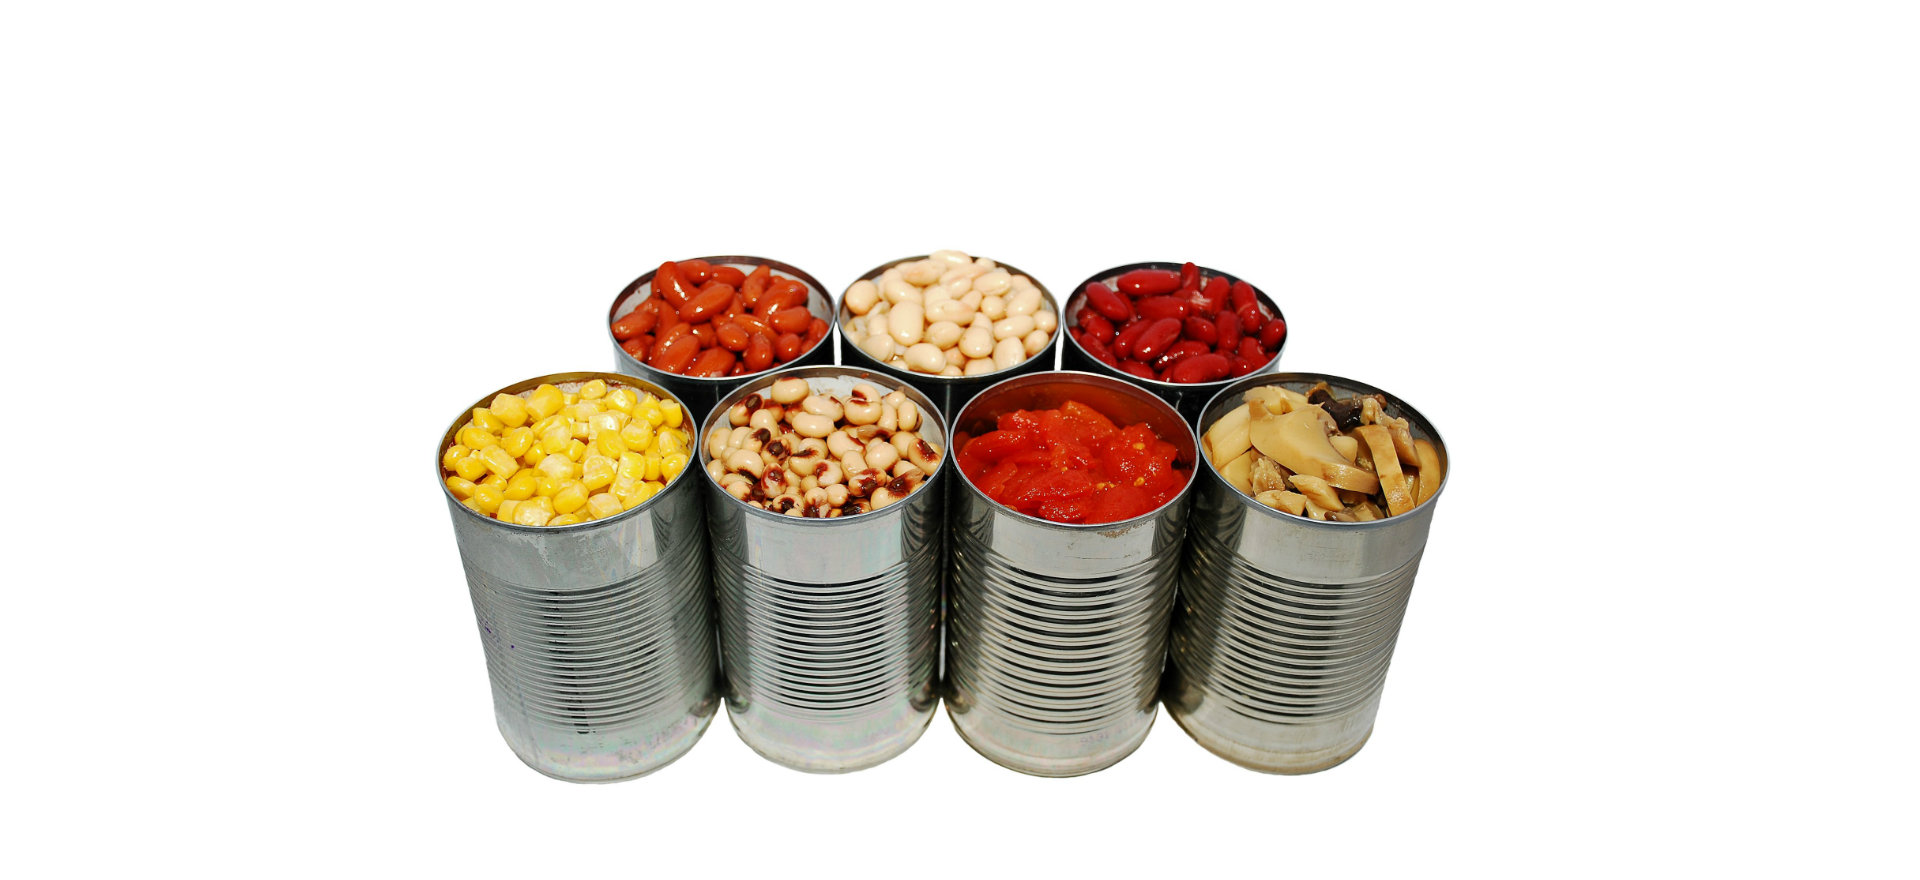 image of canned foods